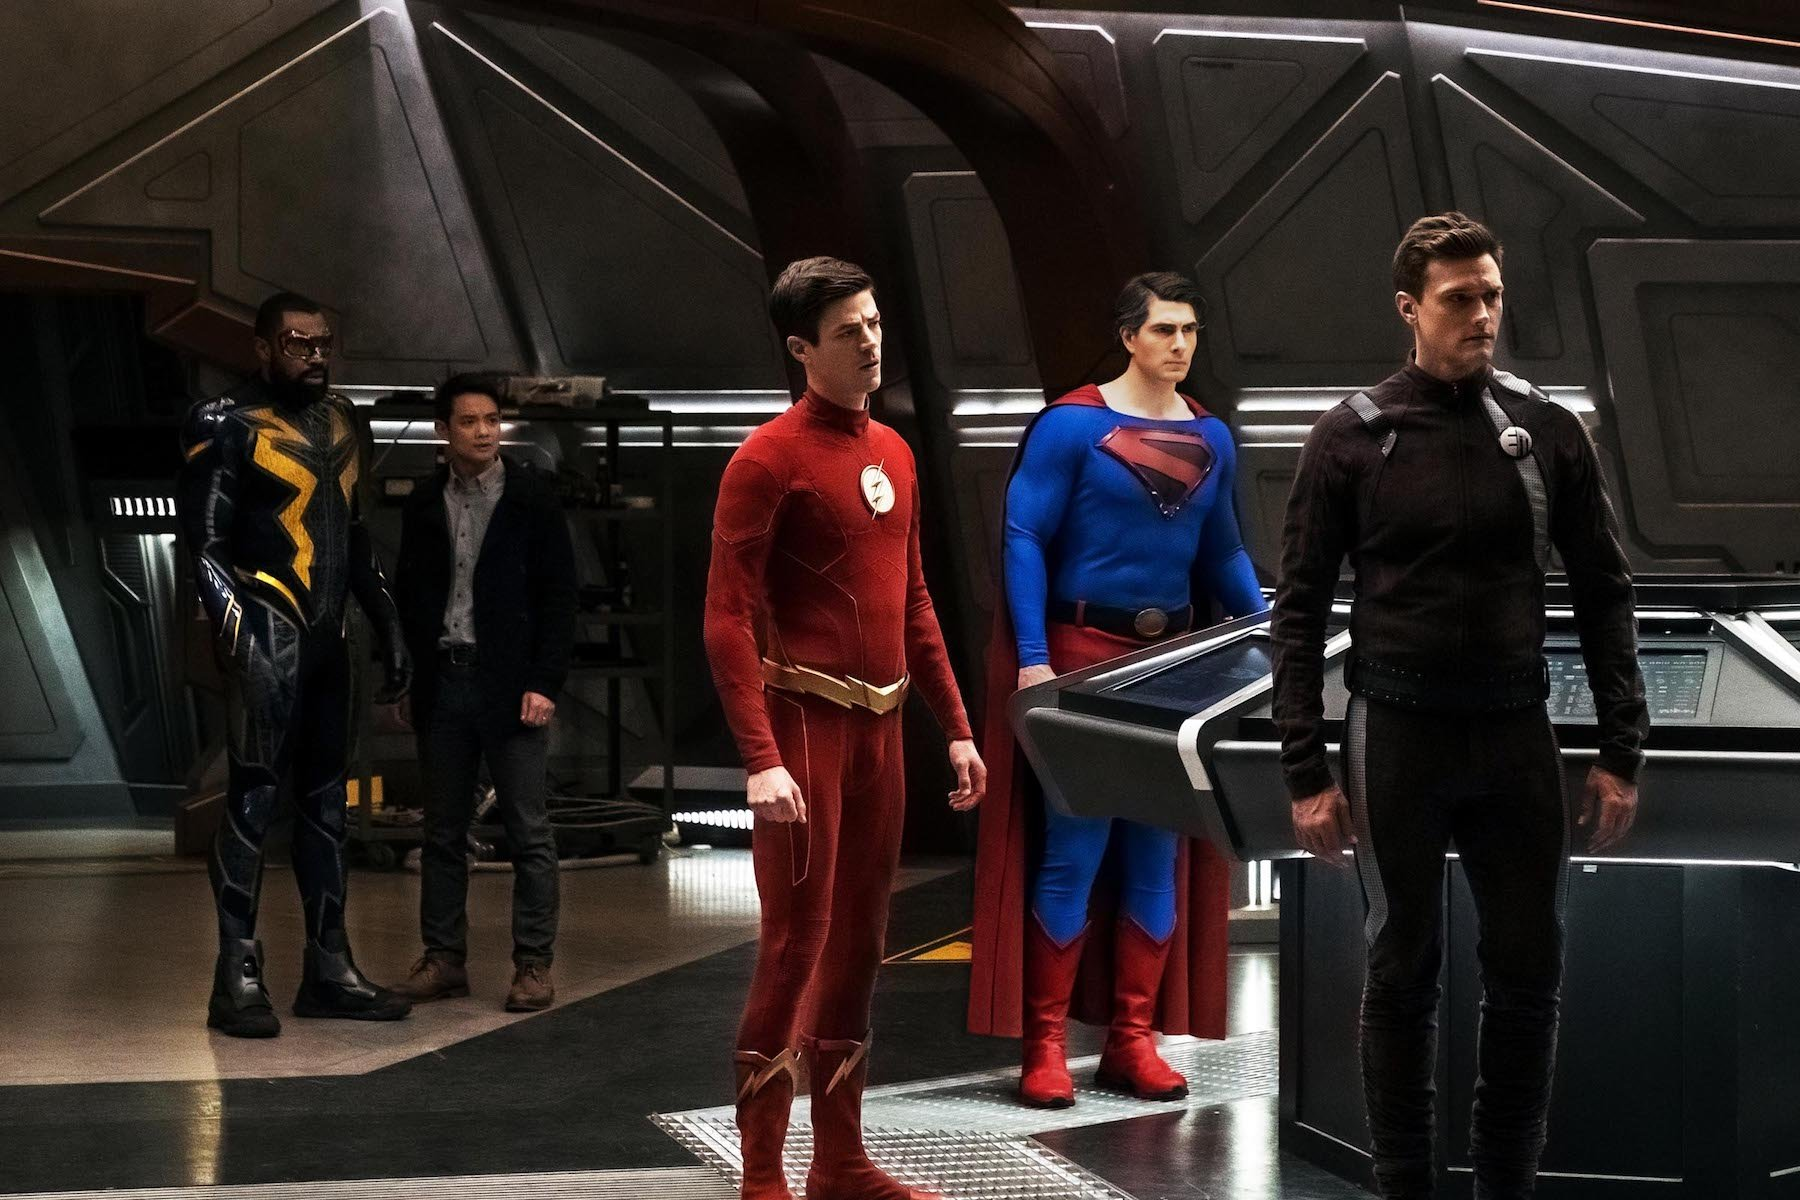 Cress Williams as Black Lightning, Osric Chau as Ryan Choi, Grant Gustin as Barry Allen/The Flash, Brandon Routh as Superman and Hartley Sawyer as Dibney/Elongated Man